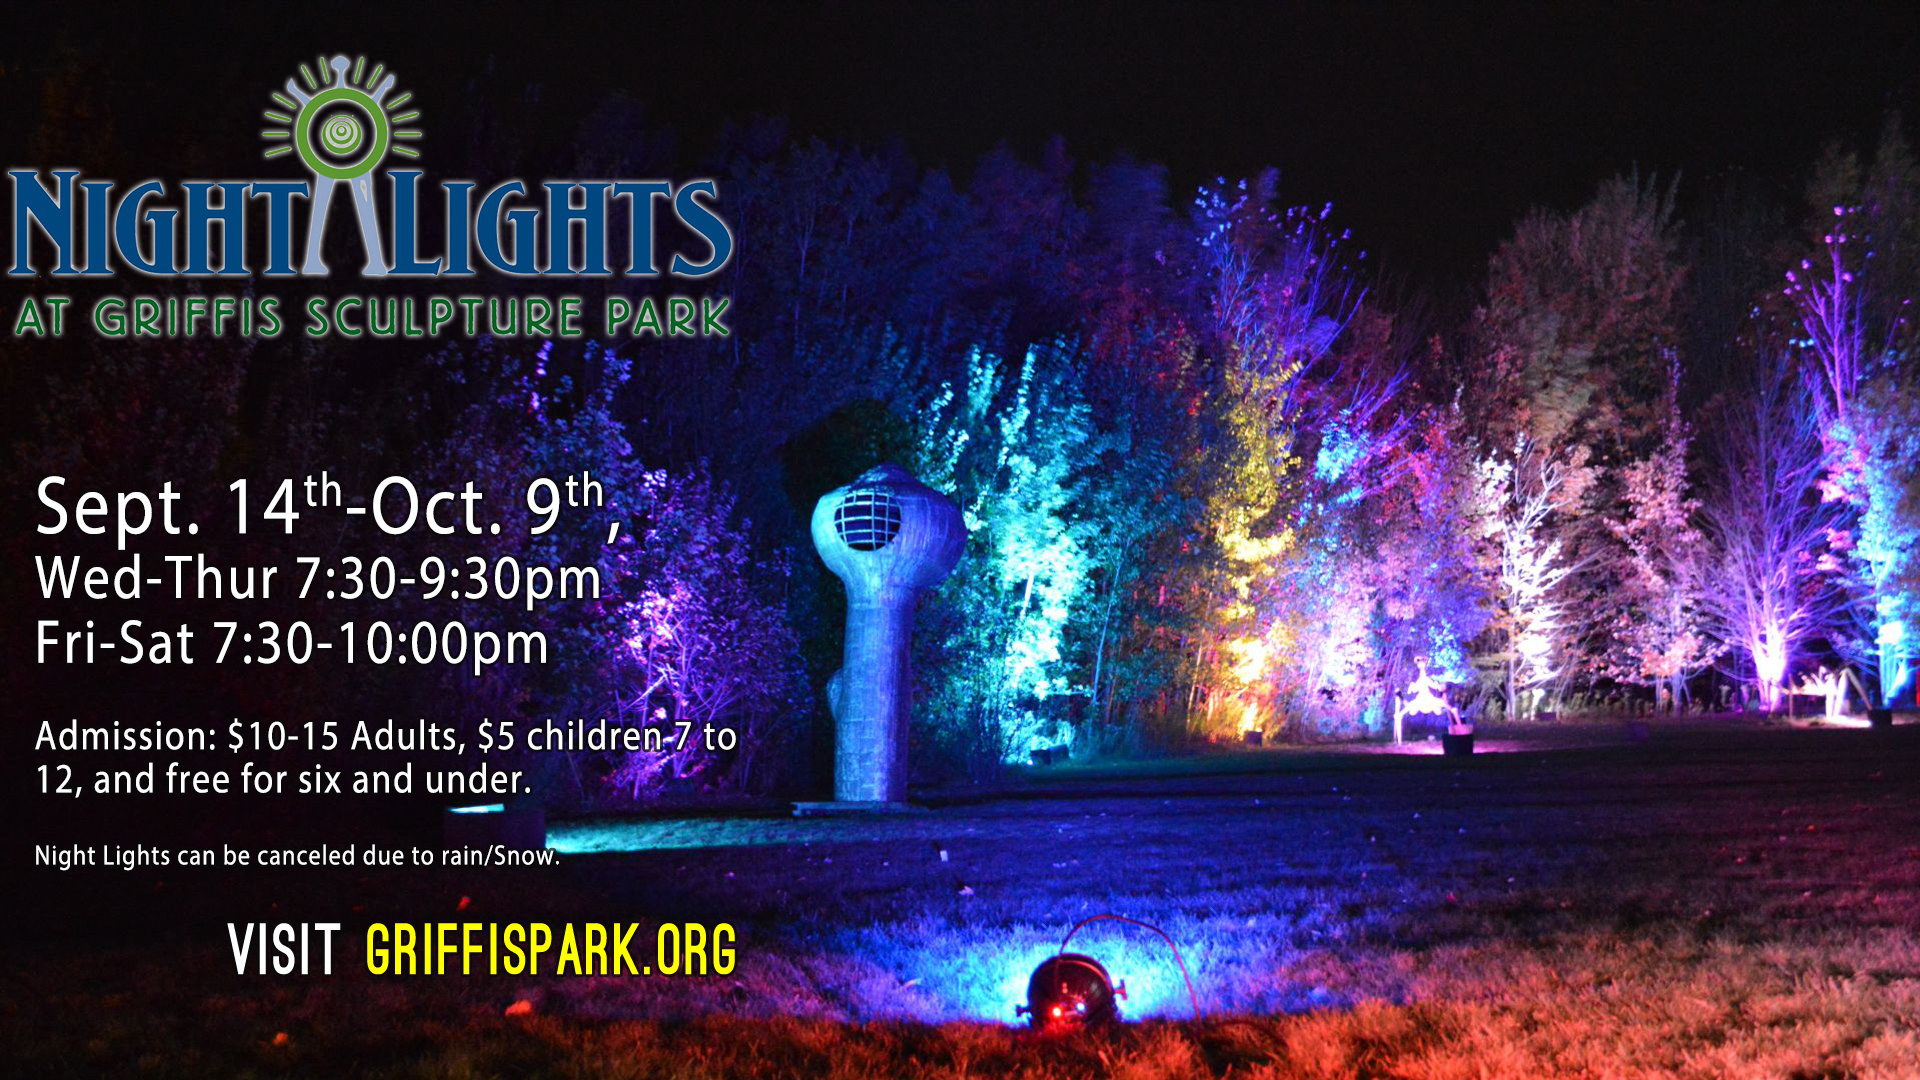 Night Lights returns to Griffis Sculpture Park